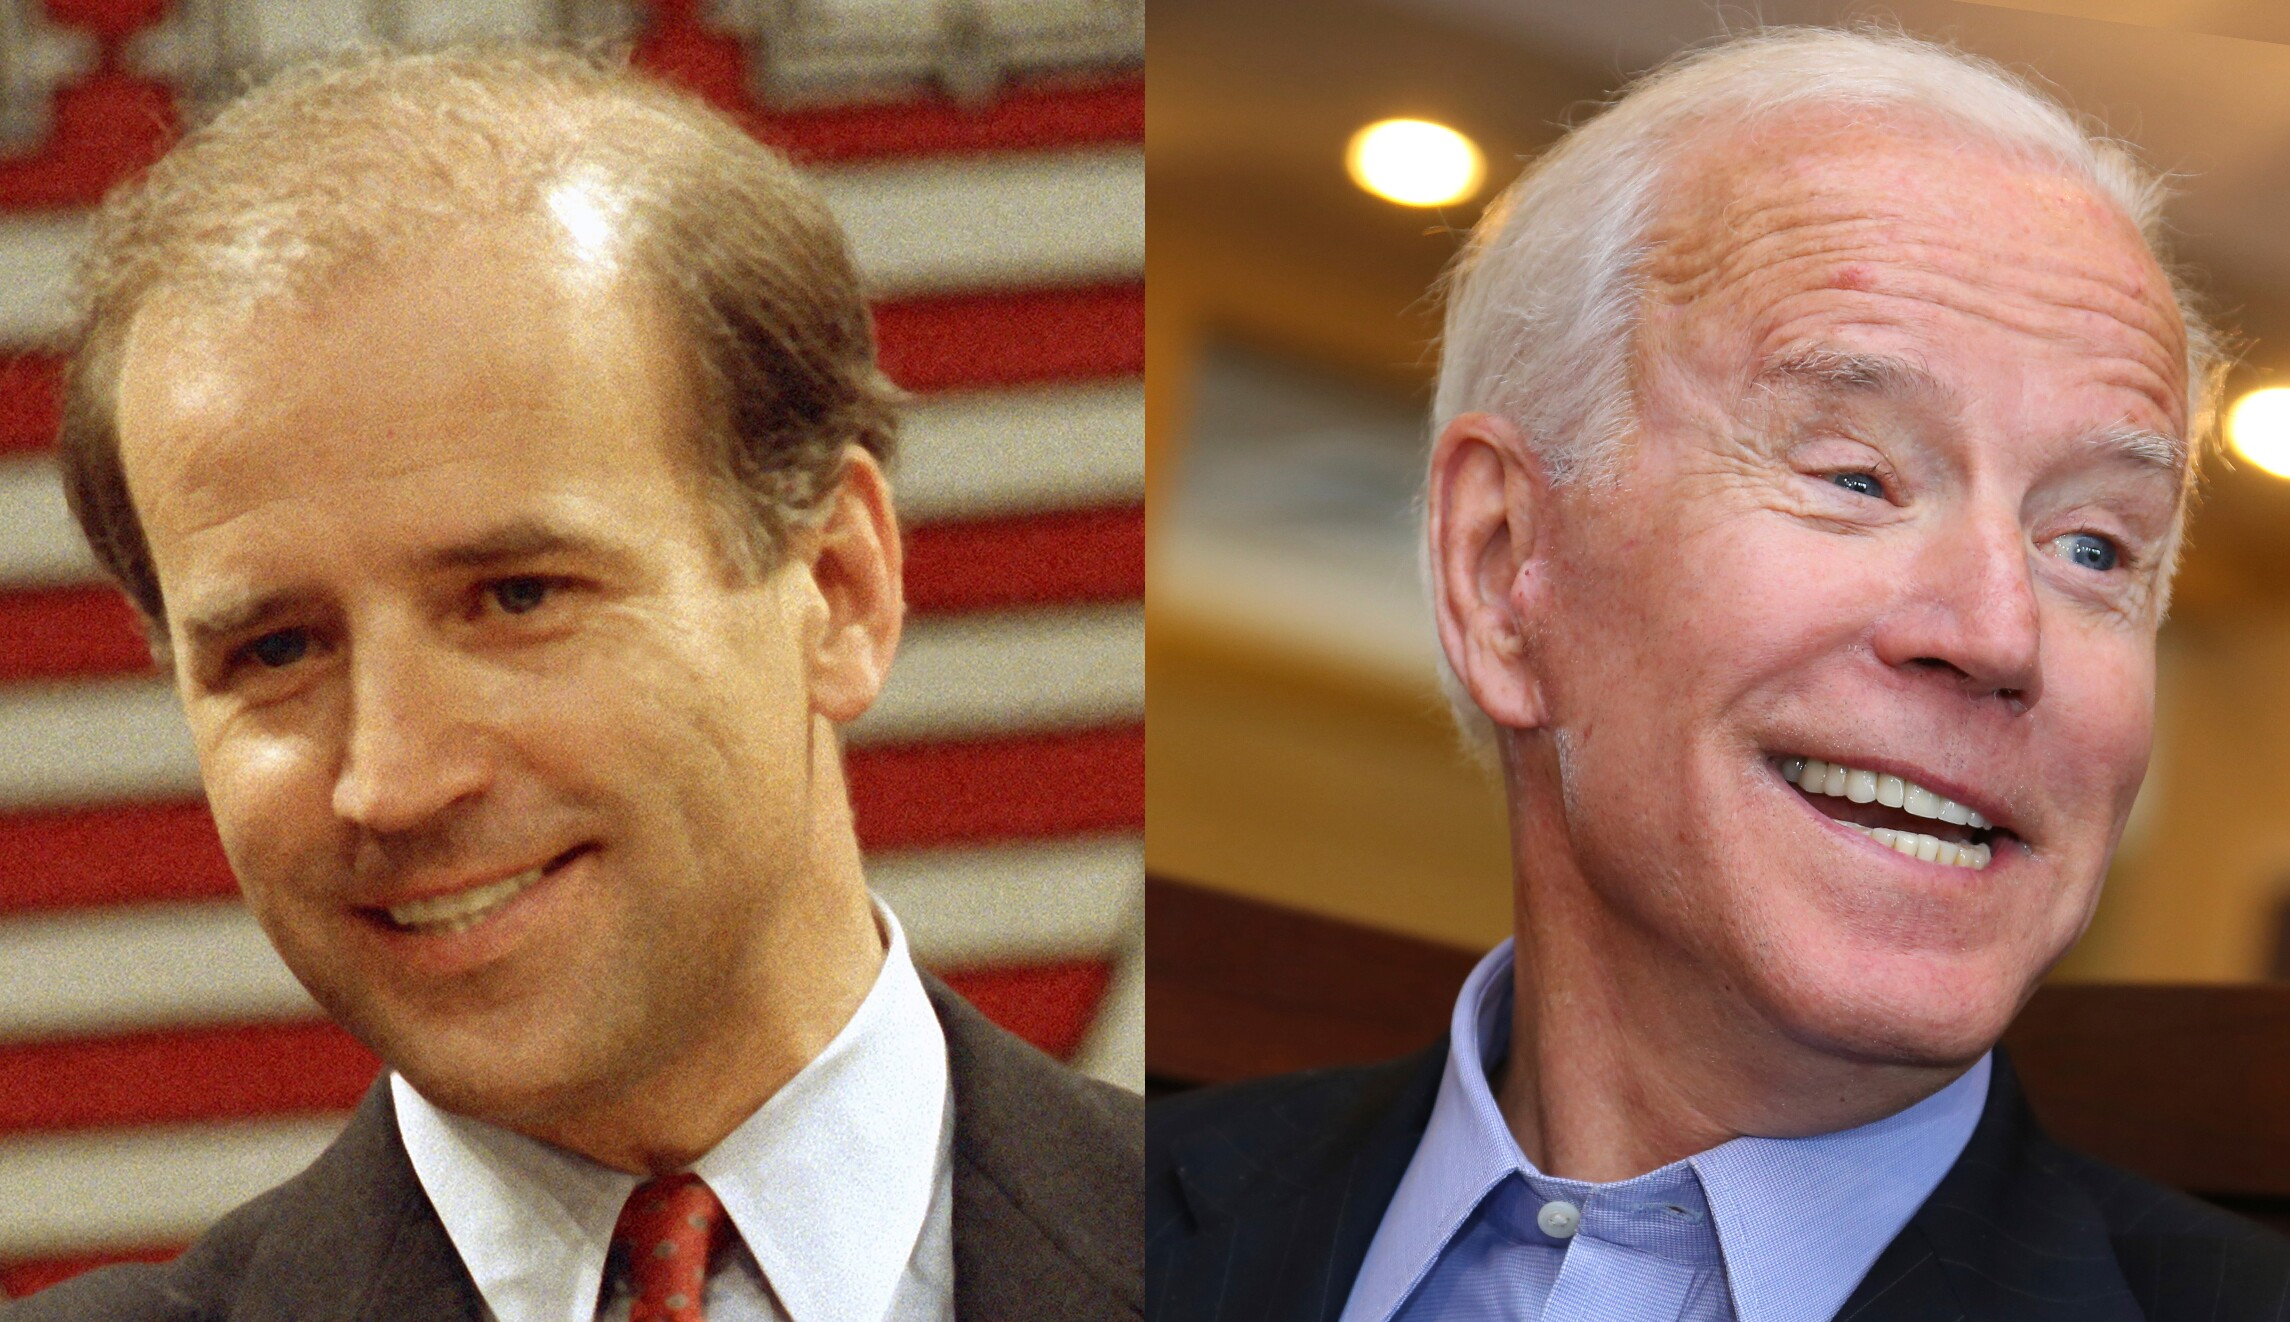 Botox, hair plugs, and veneers: Biden could escape the